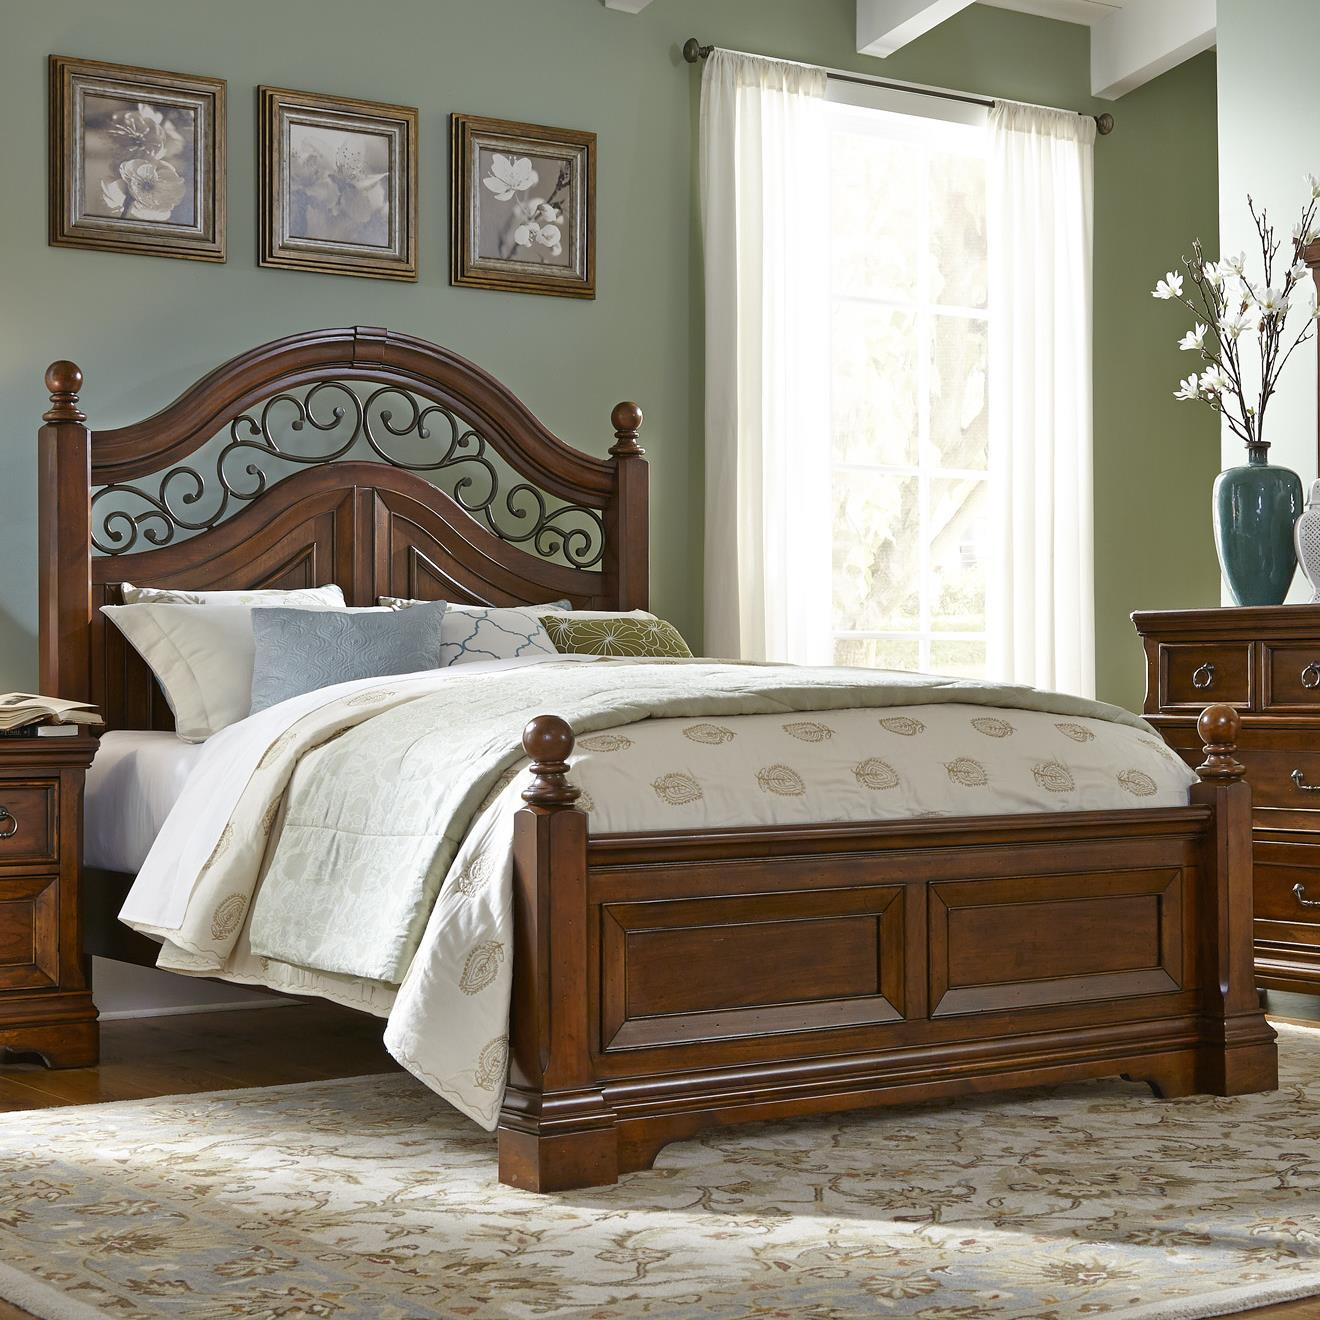 Liberty Furniture Laurelwood King Poster Bed - Item Number: 547-BR03+BR04+BR73